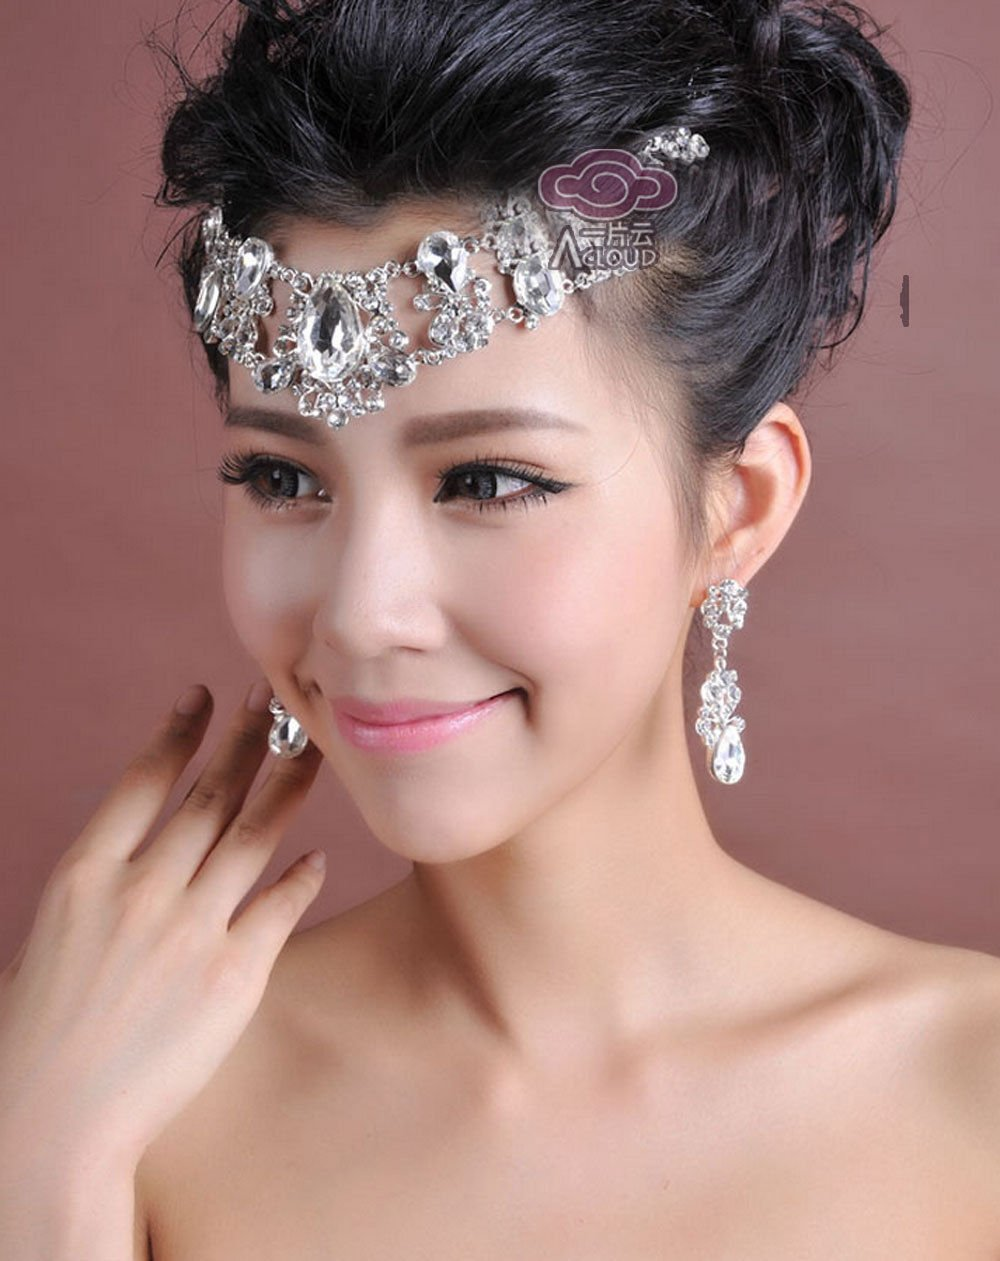 Crystal Rhinestone Head Chain Bridal Headpiece Wedding Hair Jewelry Tiara Set